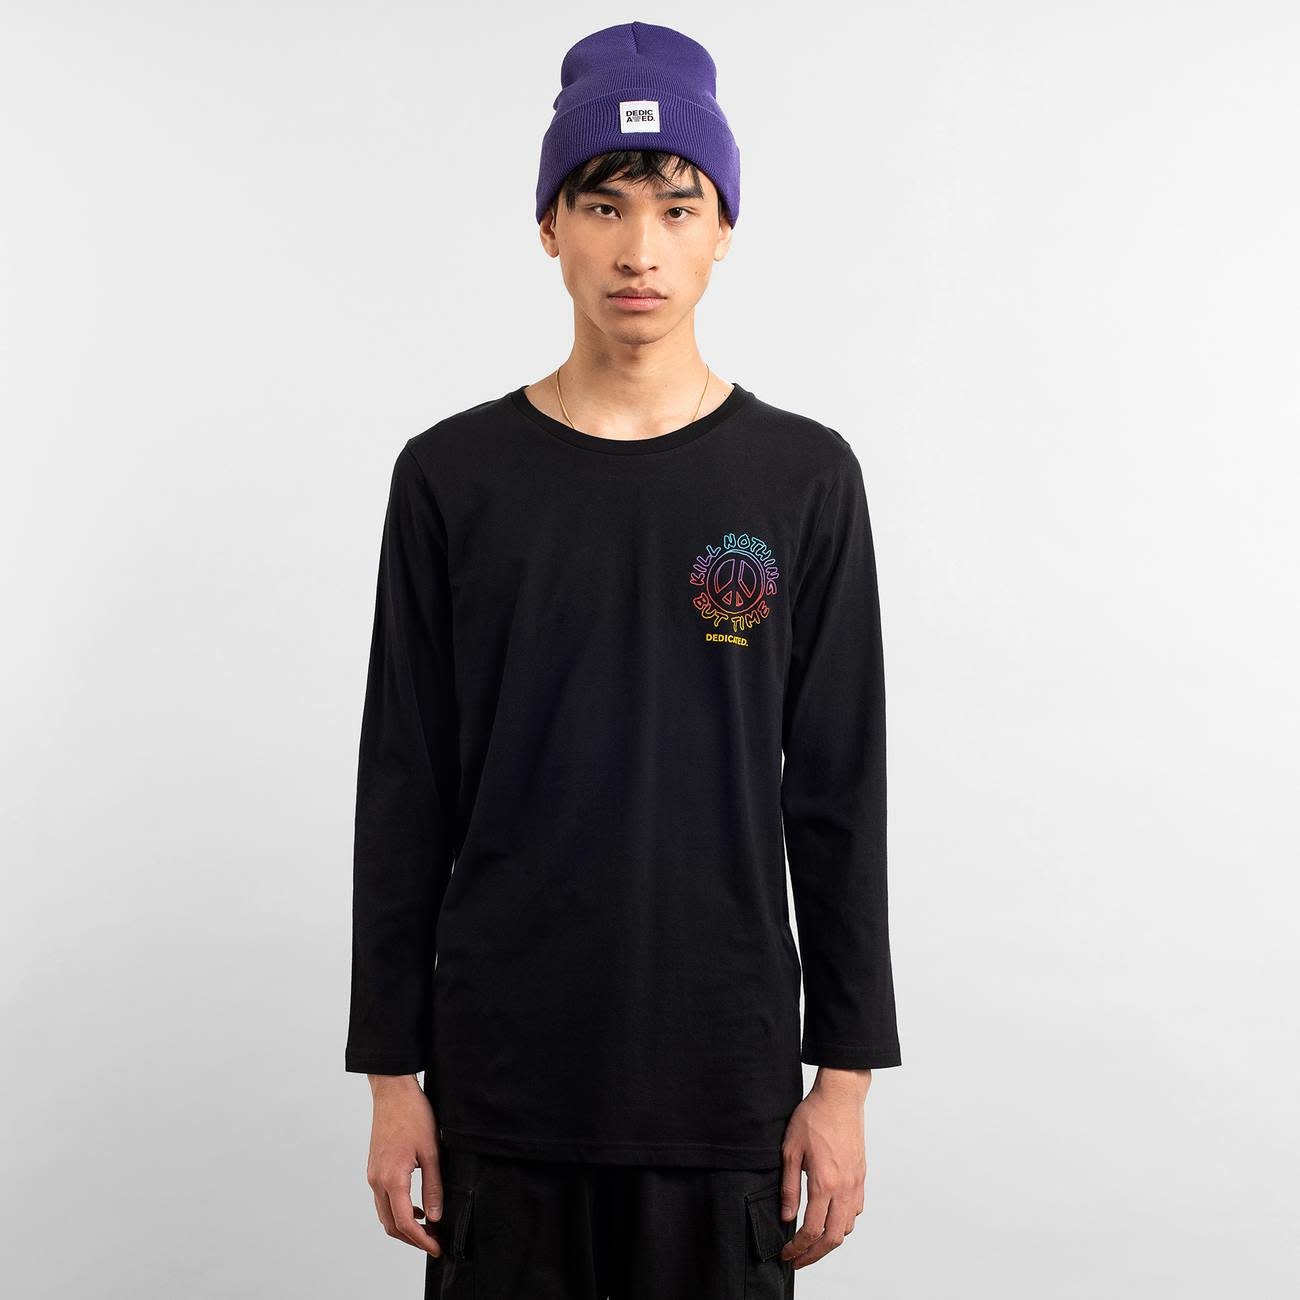 Dedicated Dedicated Hasle Kill Nothing Long Sleeve Tee Black